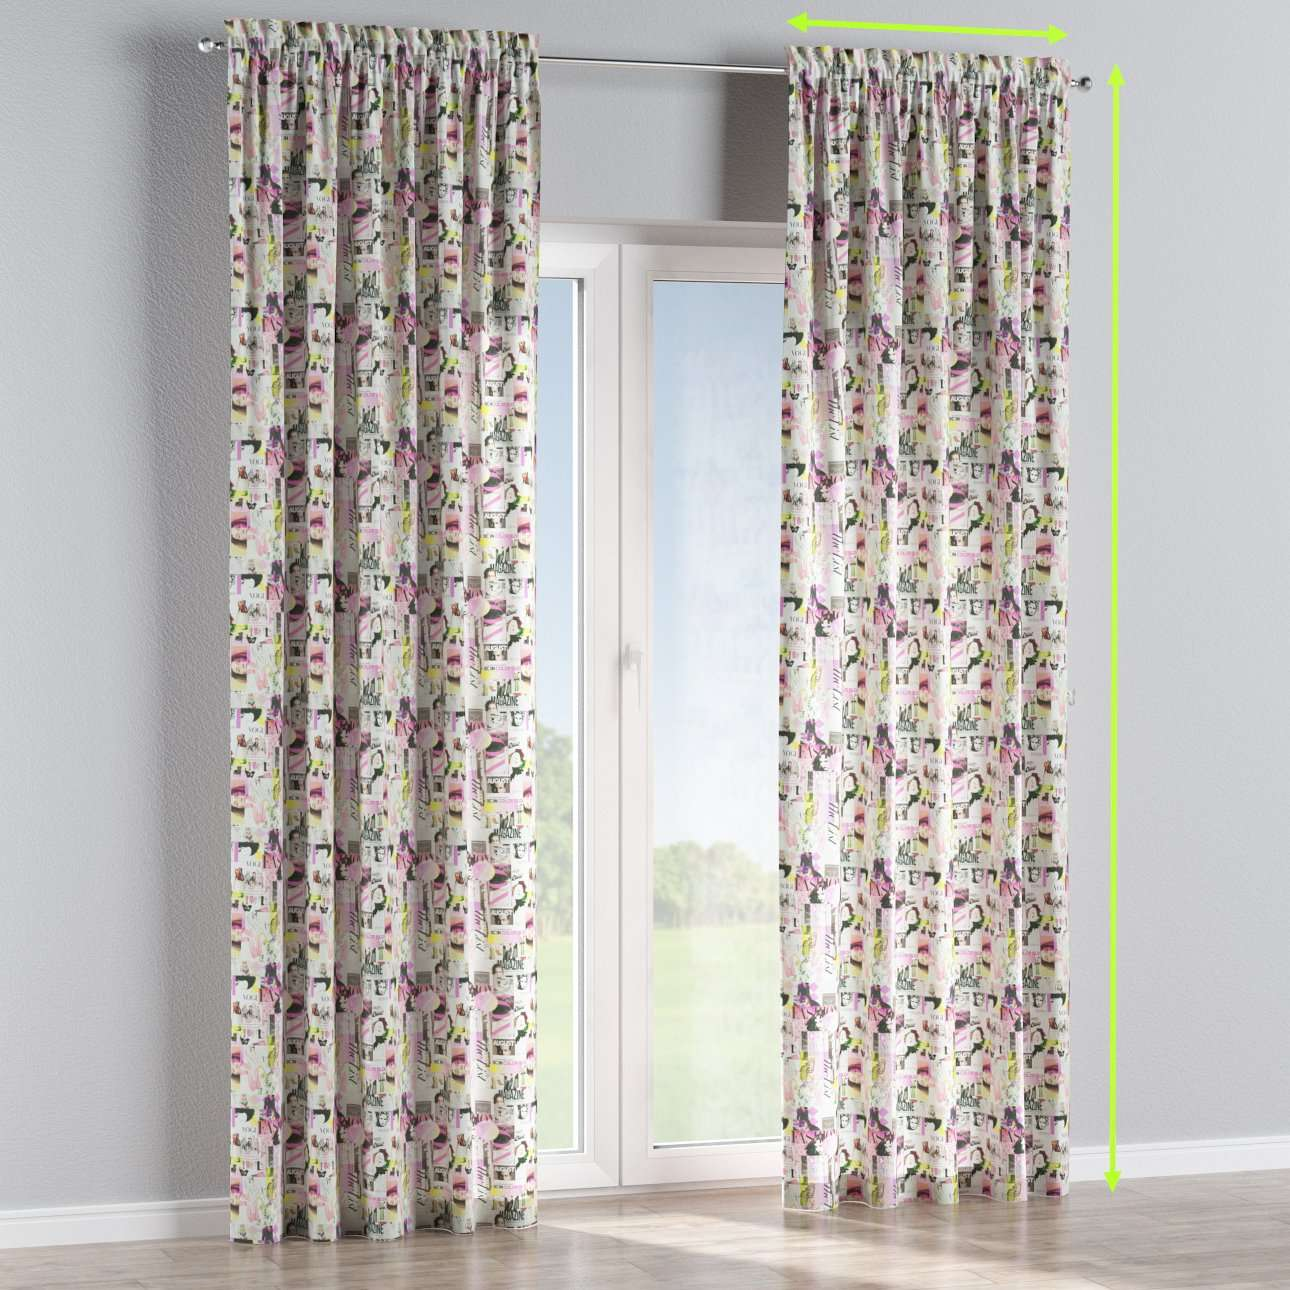 Slot and frill lined curtains in collection Freestyle, fabric: 135-15